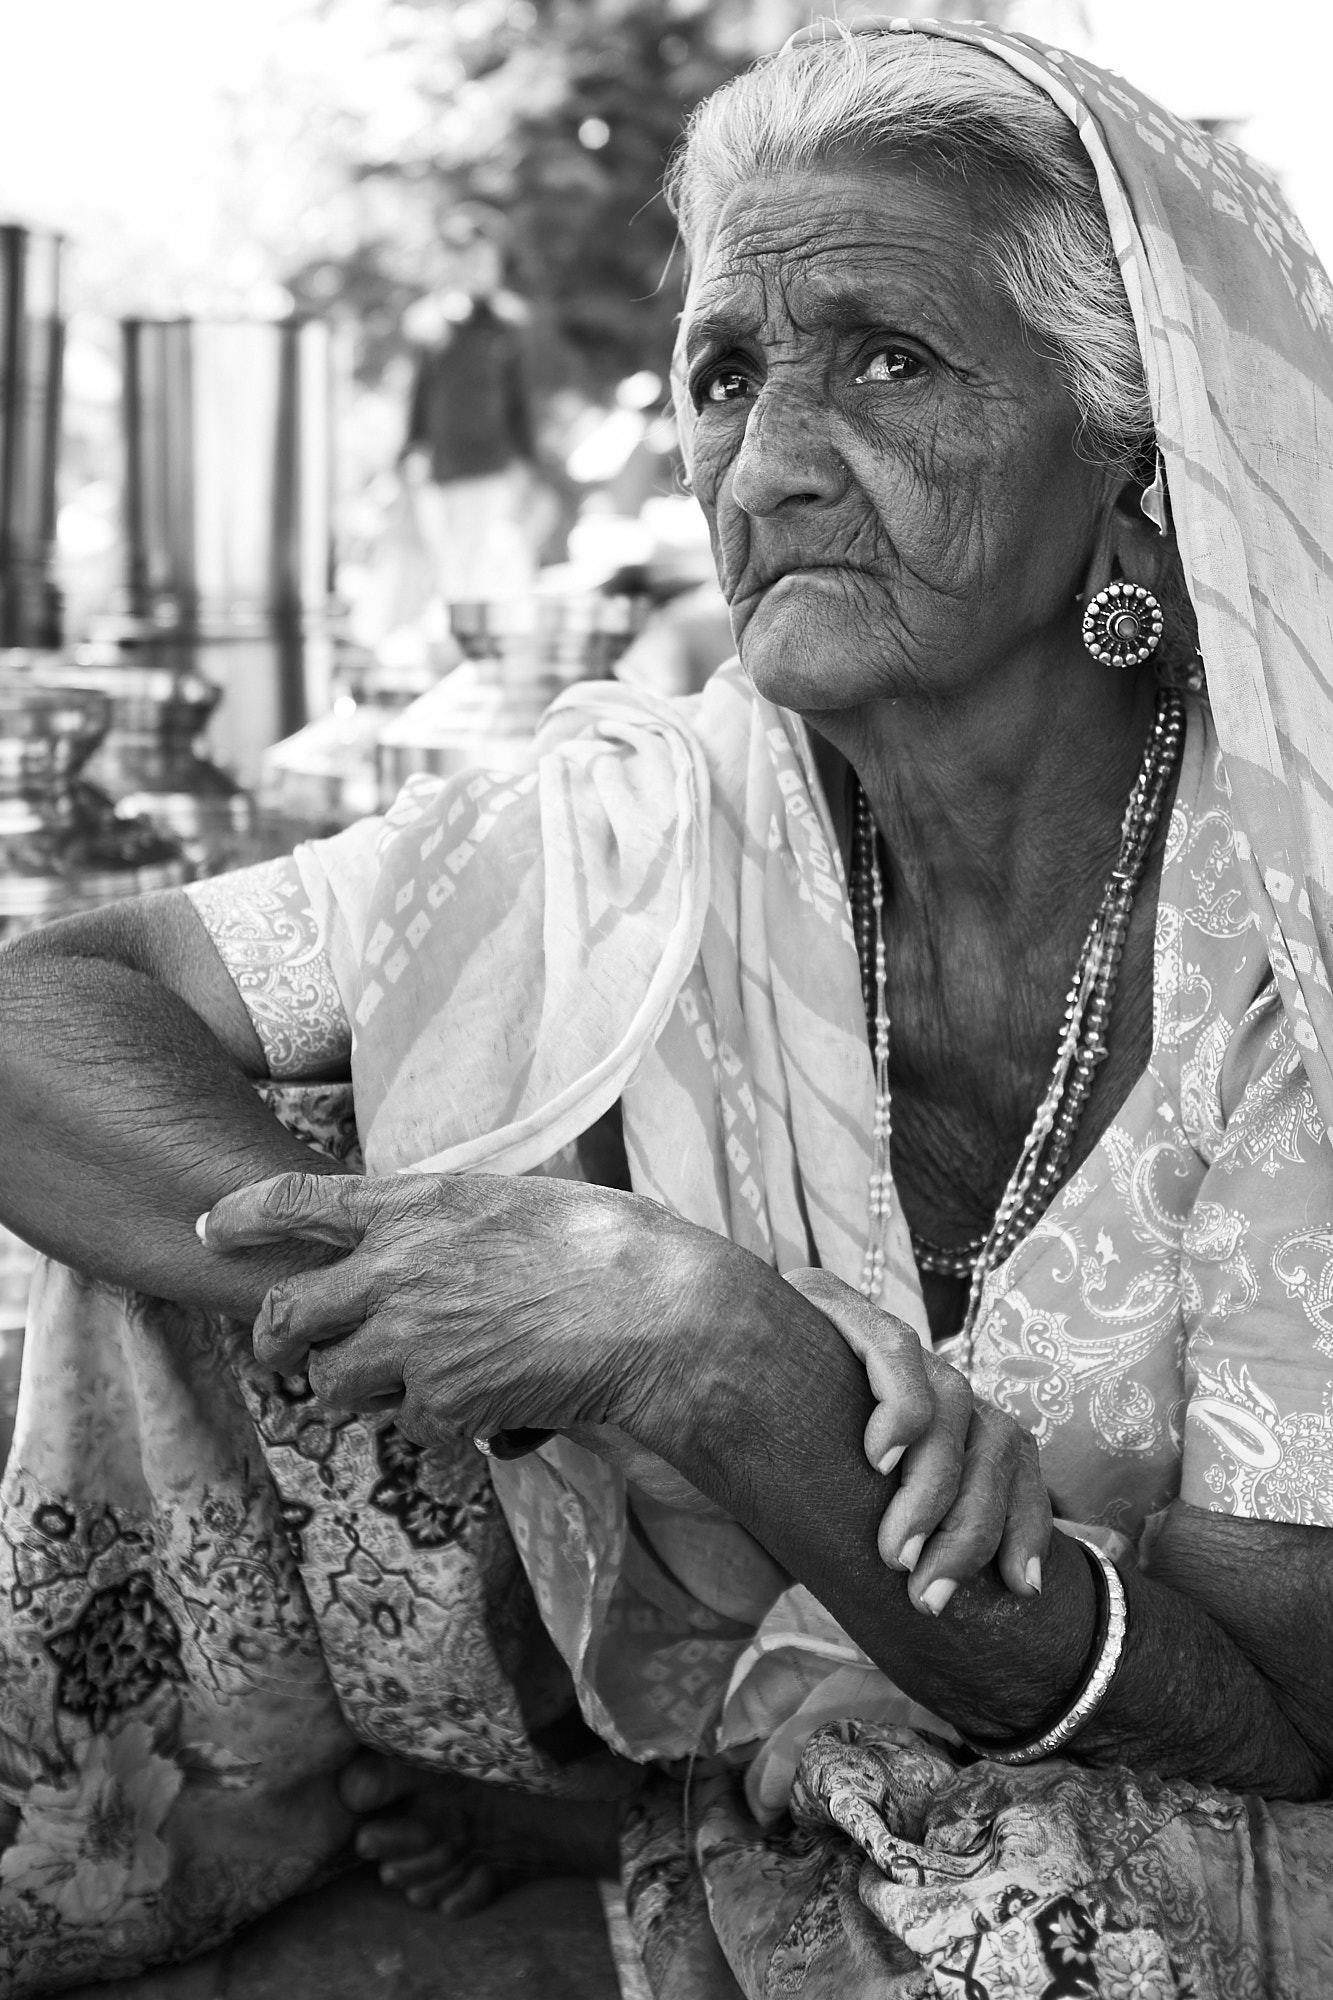 An elderly woman photographed at Ahmedabad's Sunday market